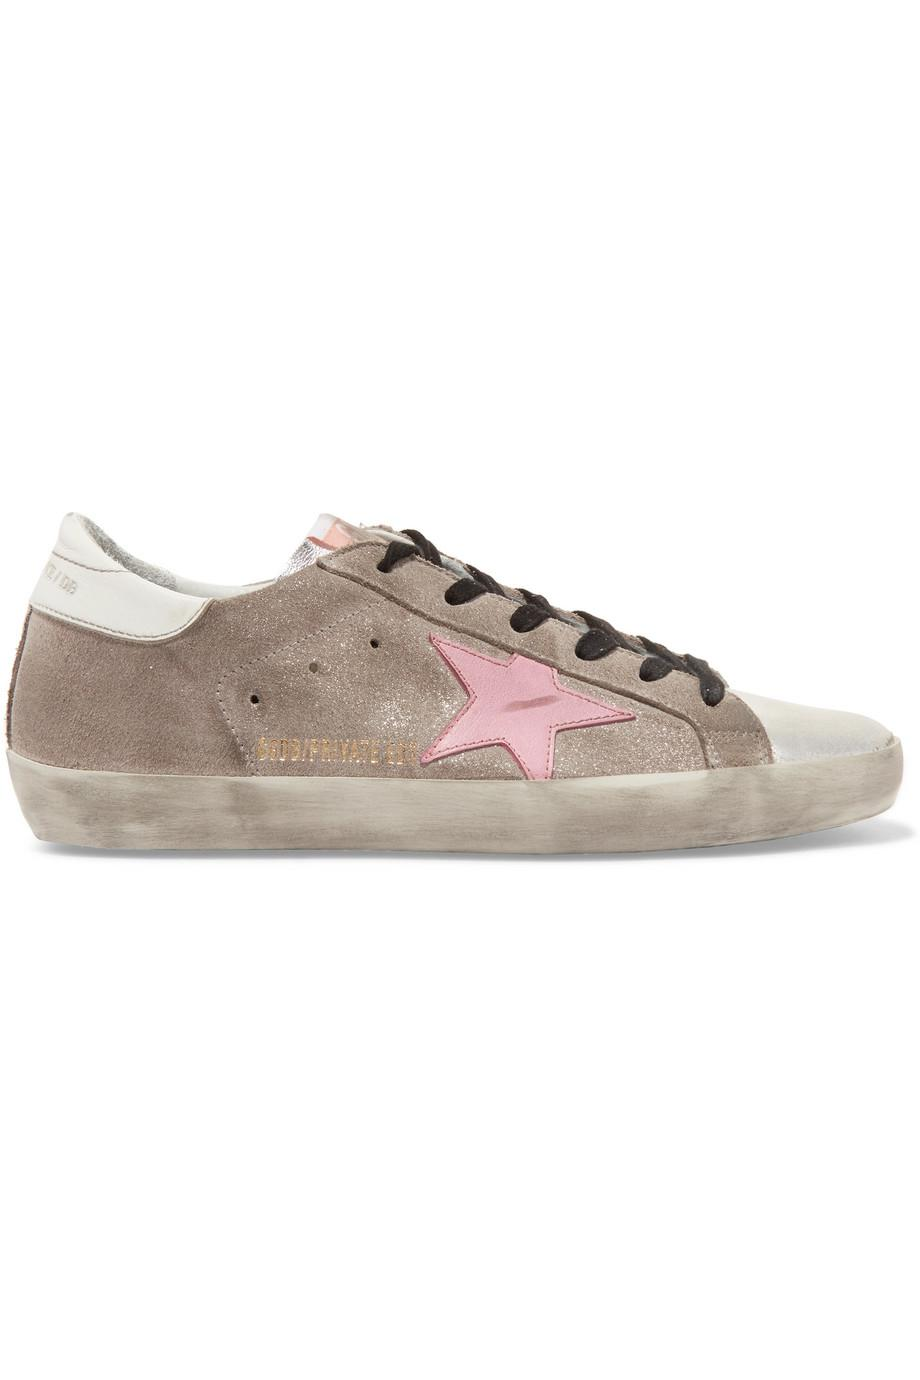 Superstar Distressed Glittered Suede And Leather Sneakers - Silver Golden Goose bhqU3aJu